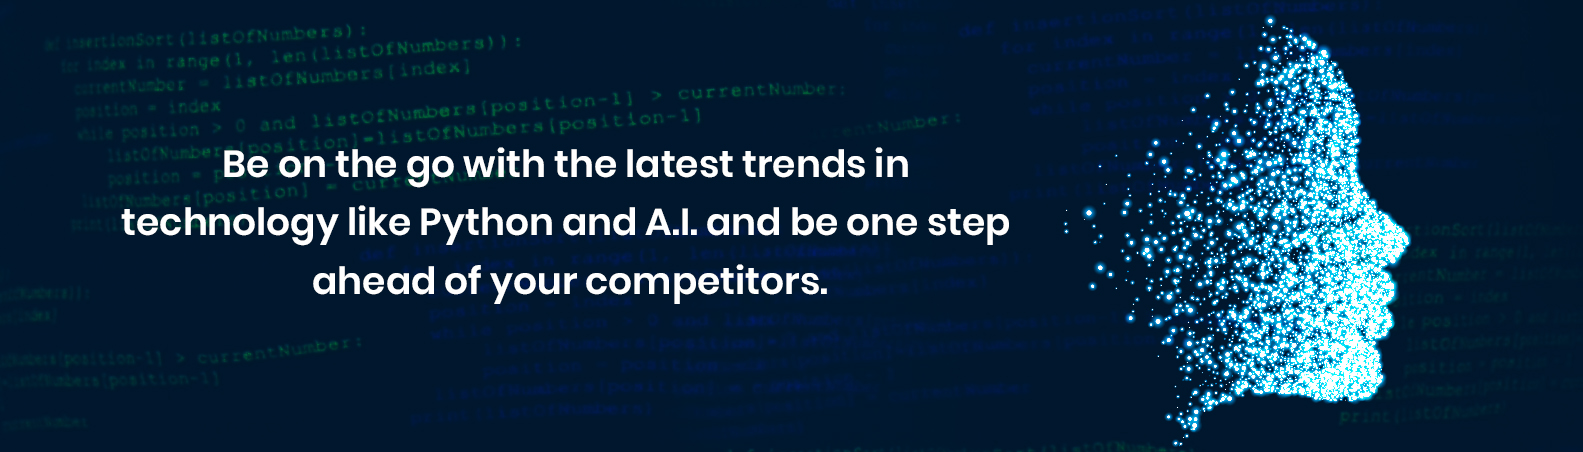 Machine Learning & Python: A New Combo For Futuristic Businesses